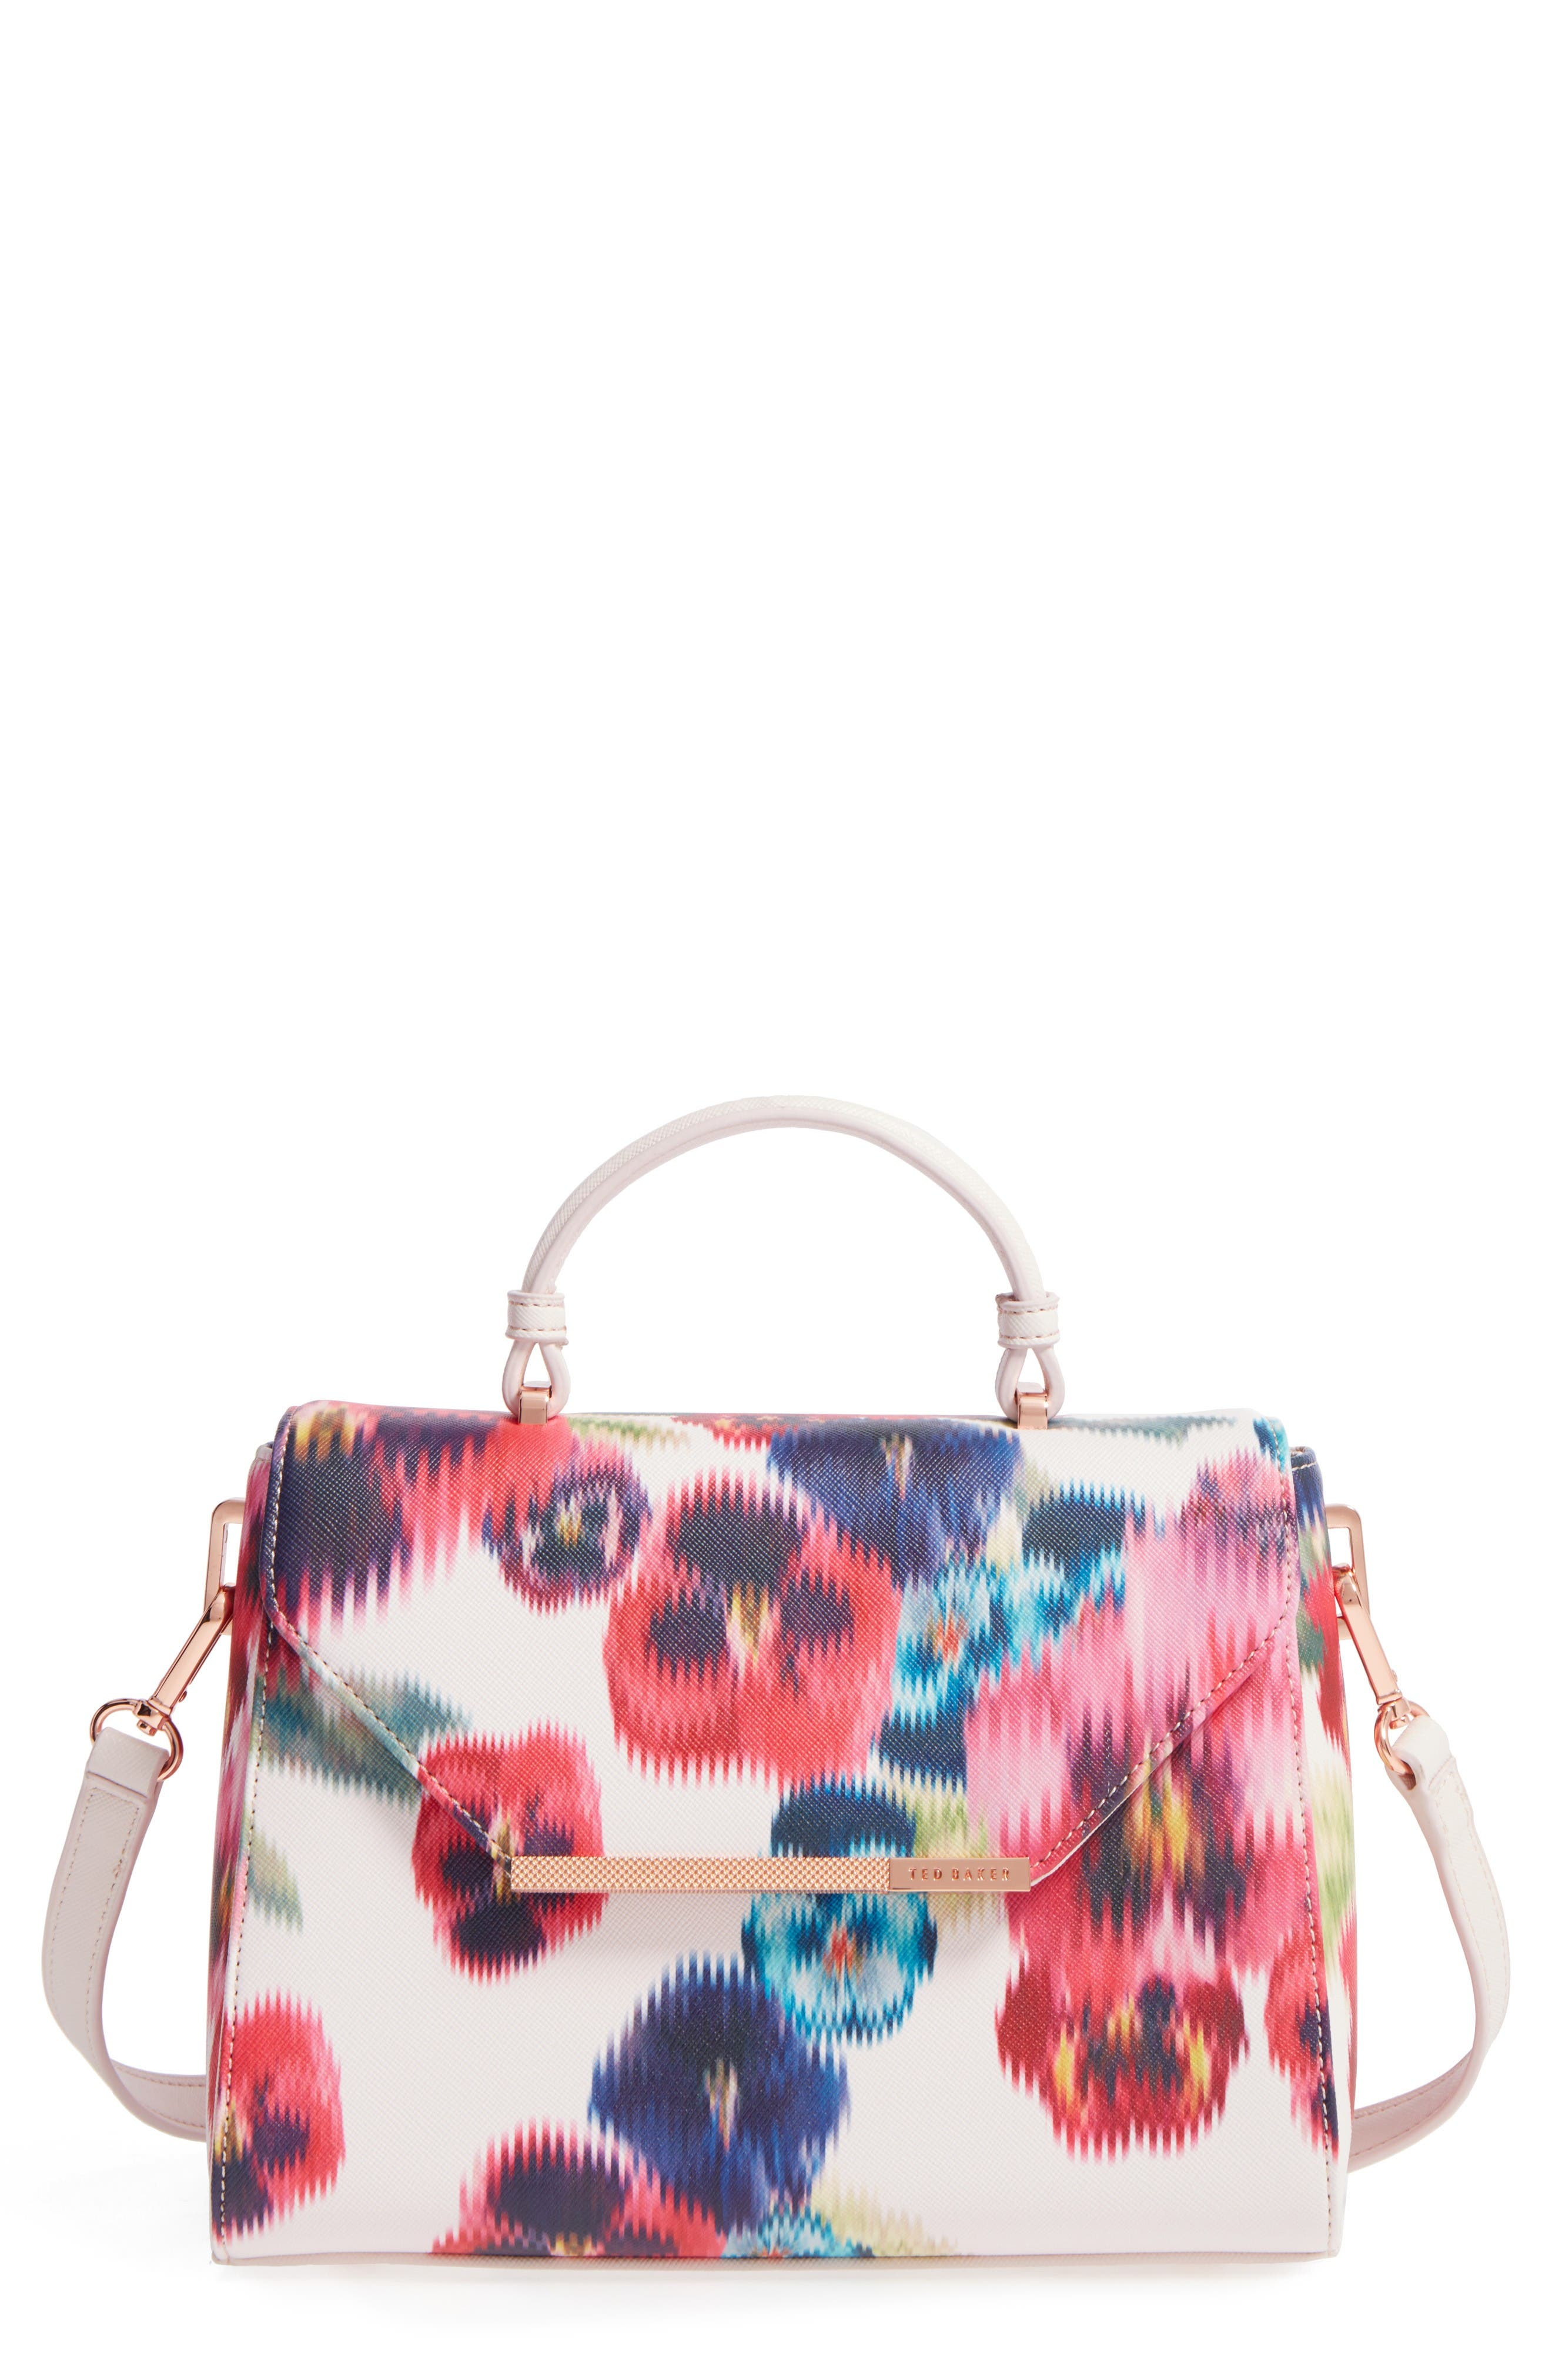 Alternate Image 1 Selected - Ted Baker London Expressive Pansy Faux Leather Top Handle Satchel